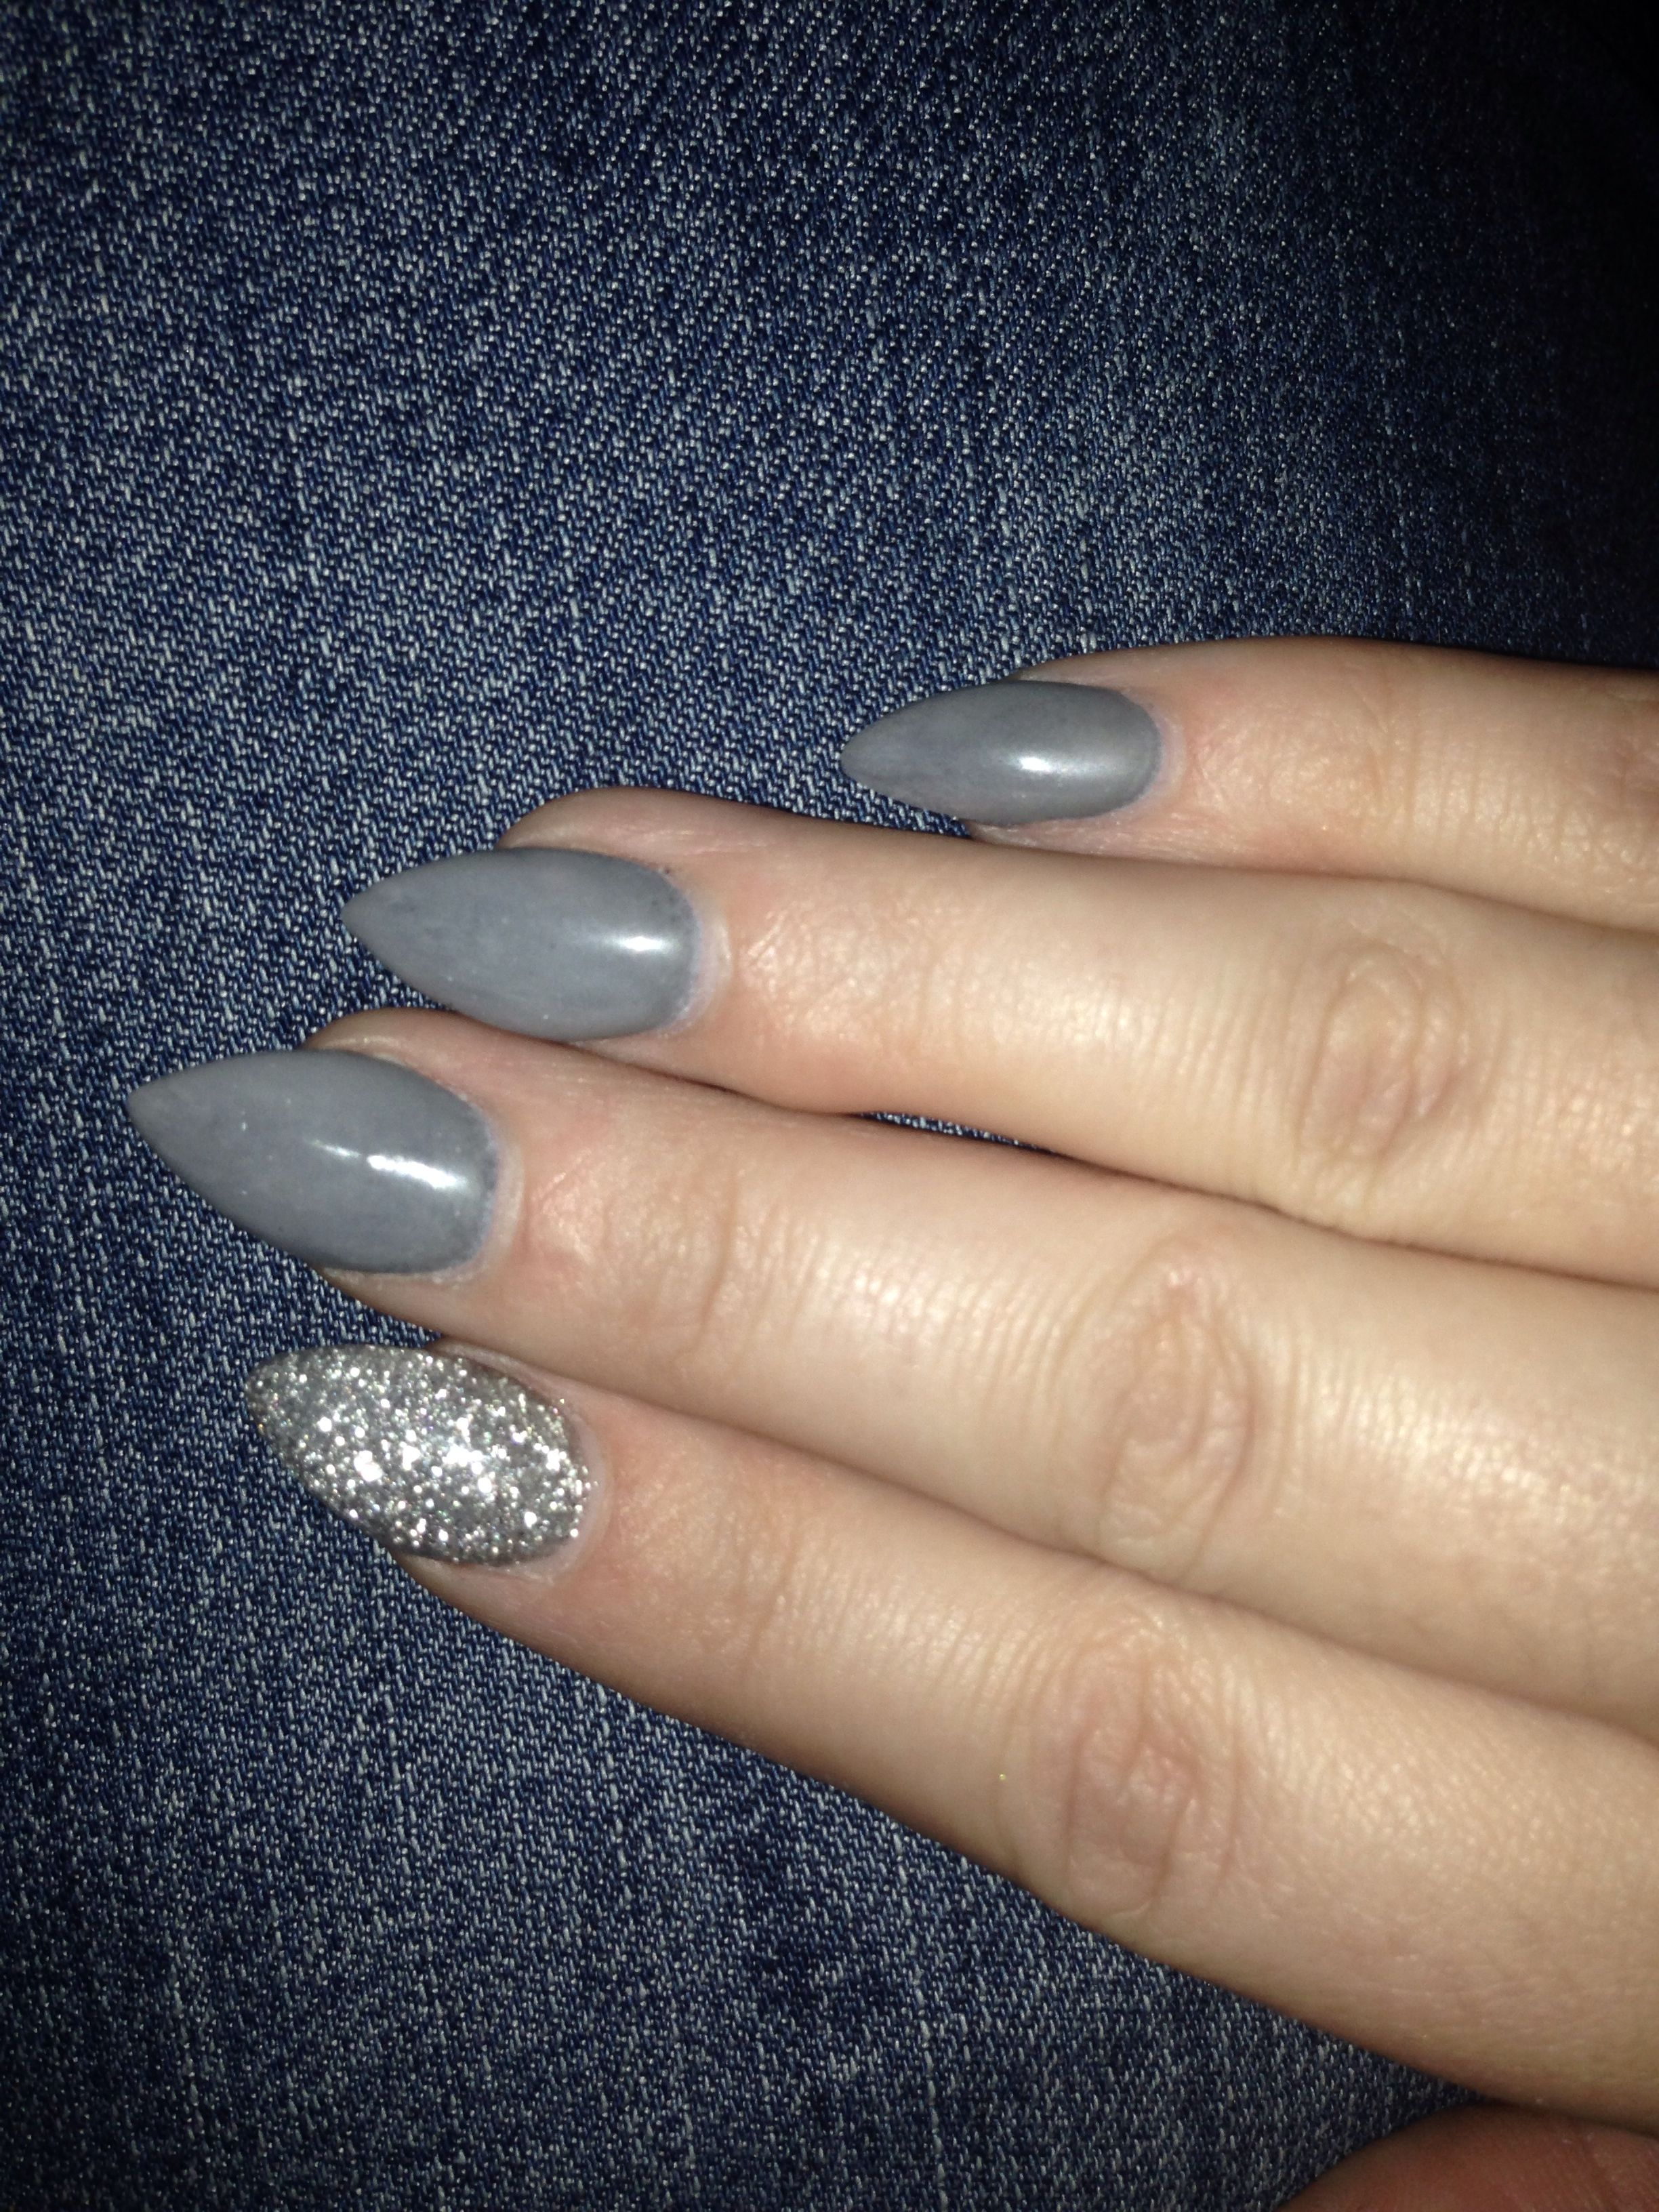 New Nails Grey And Silver Pointed Nails Pointed Nails Short Acrylic Nails Long Acrylic Nails